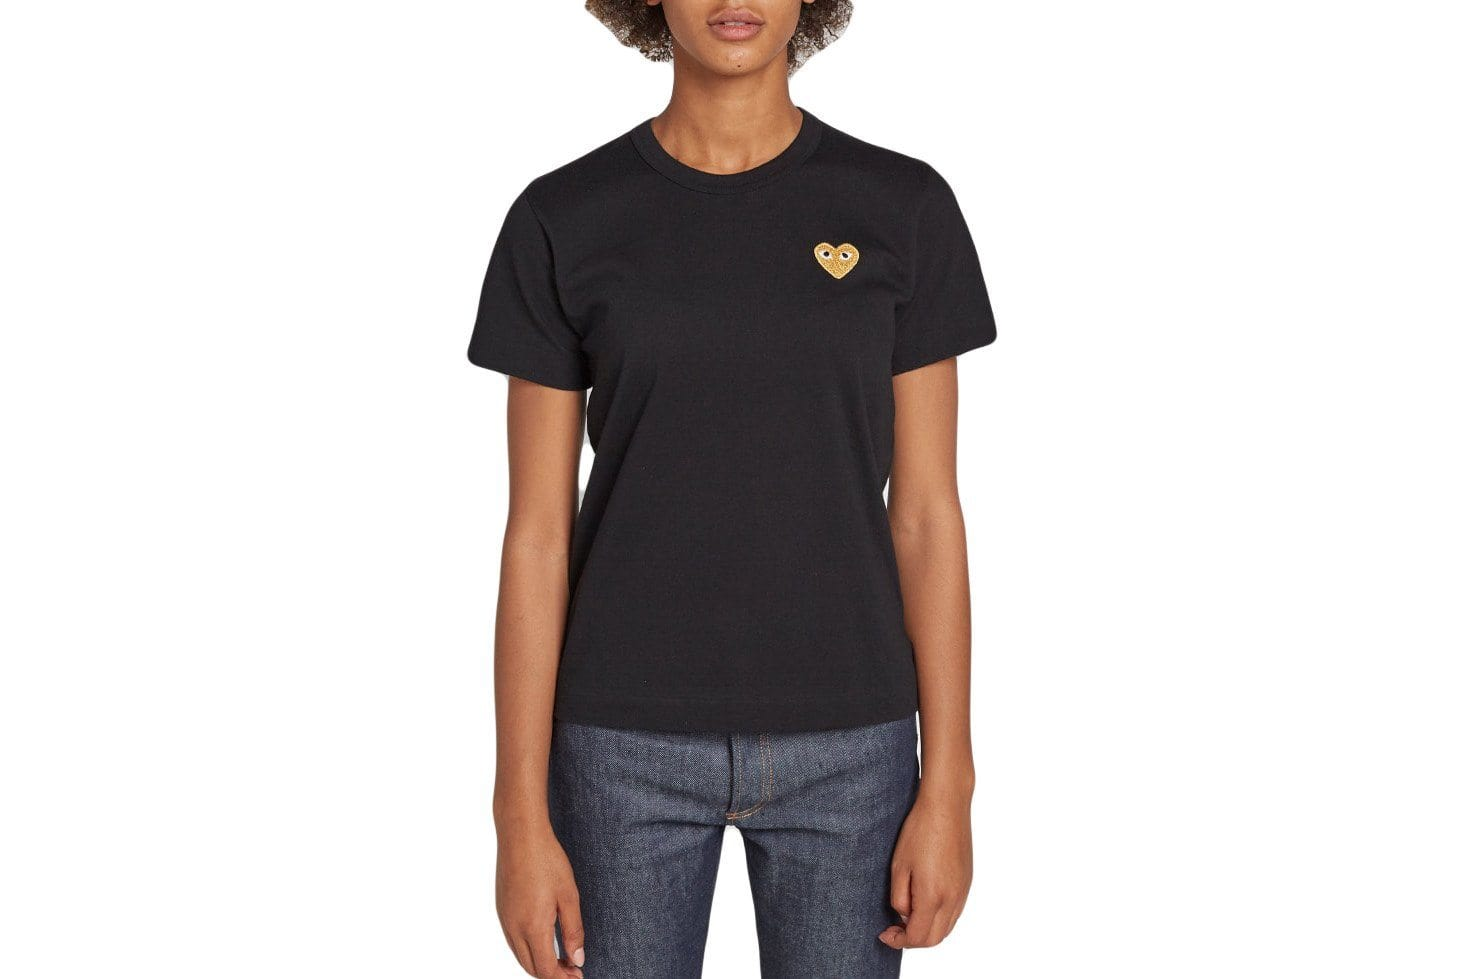 GOLD HEART BLACK TEE WOMENS SOFTGOODS COMME DES GARCONS BLACK S